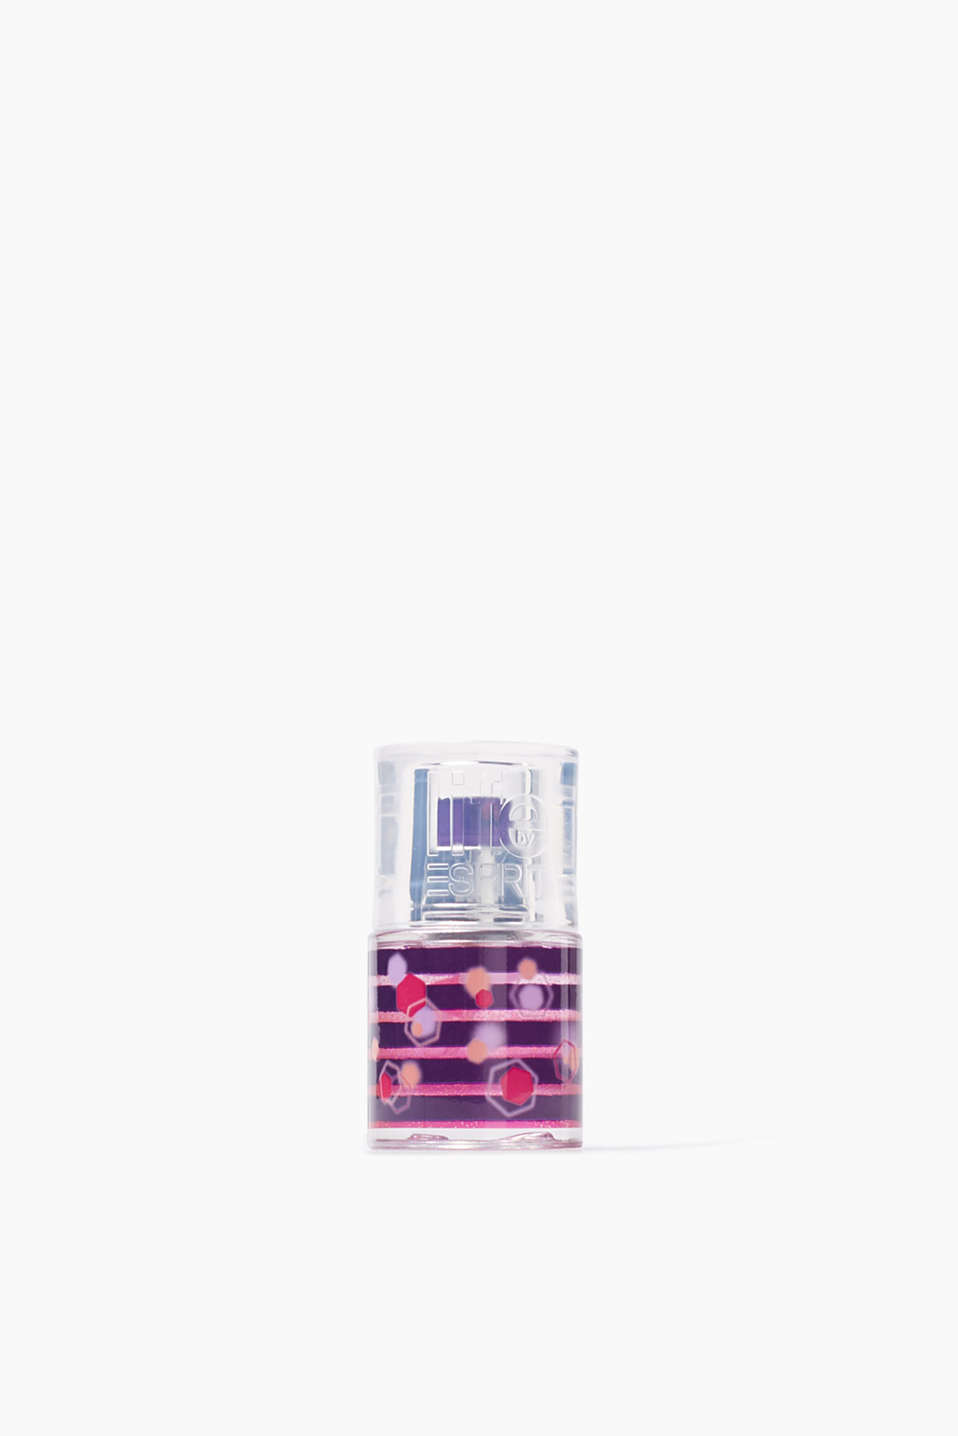 Vaporisateur Spray, 15 ml